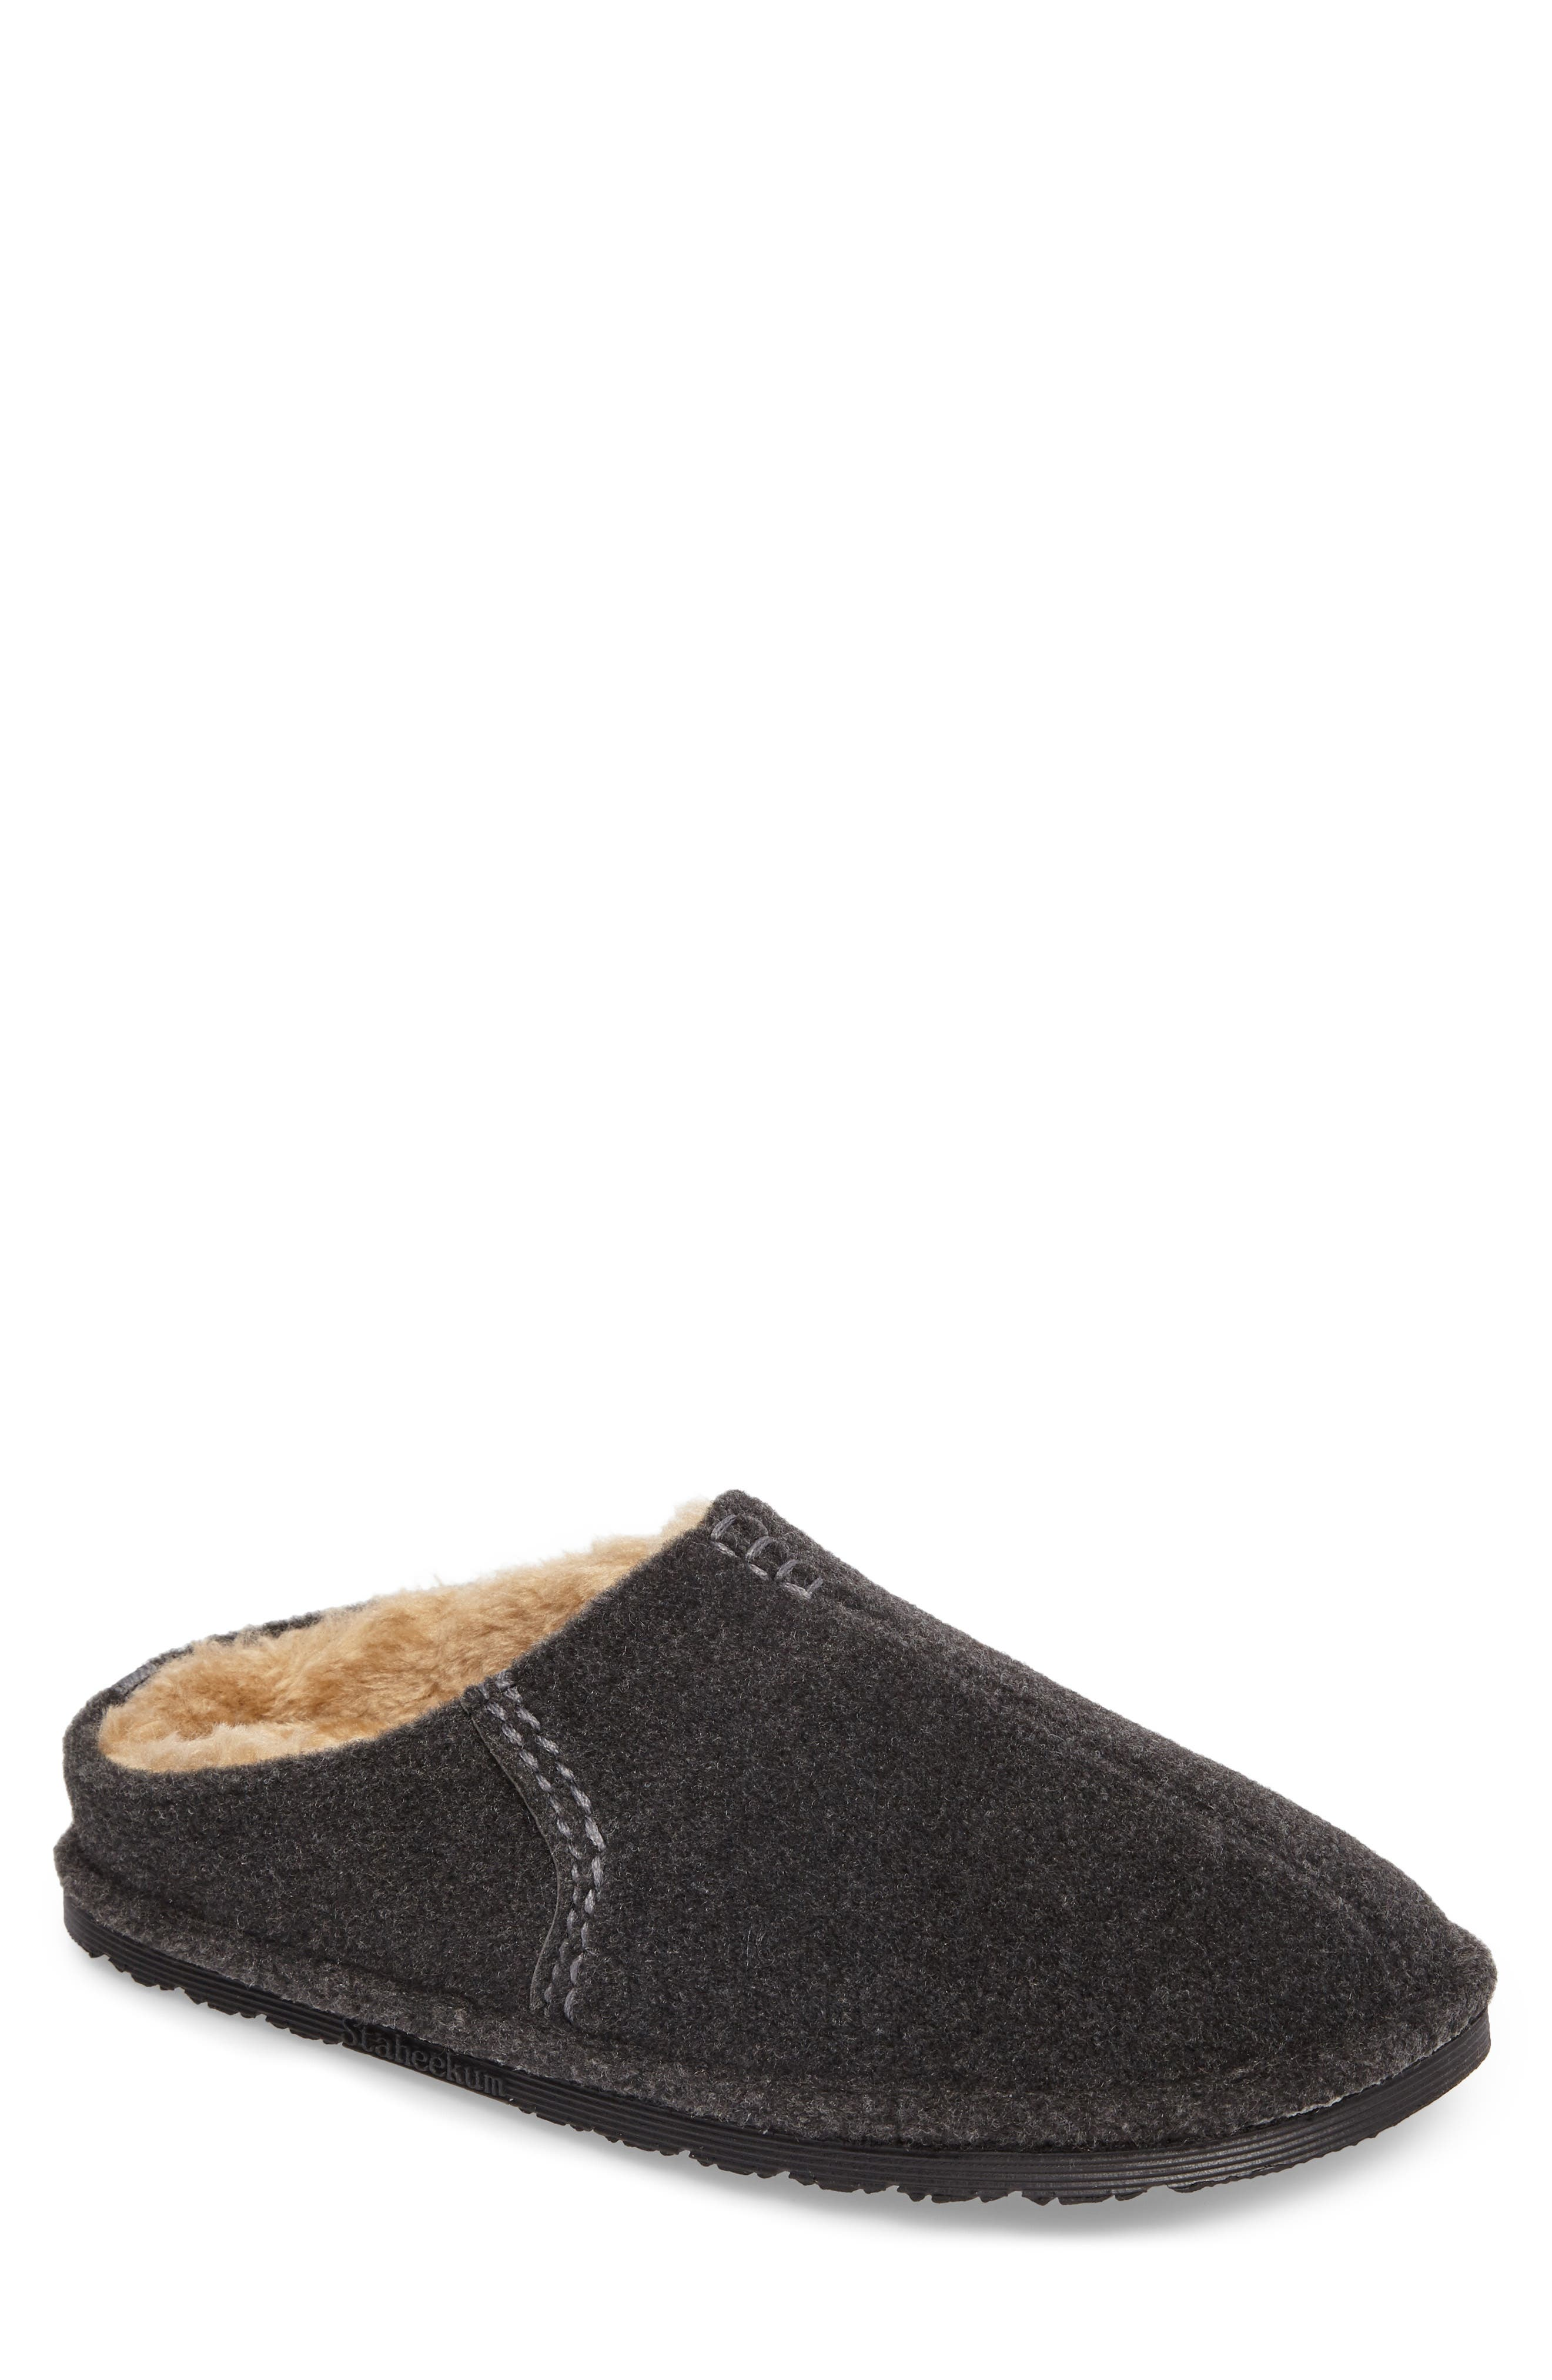 Timber Scuff Slipper,                             Main thumbnail 1, color,                             Charcoal Felt/ Polyester